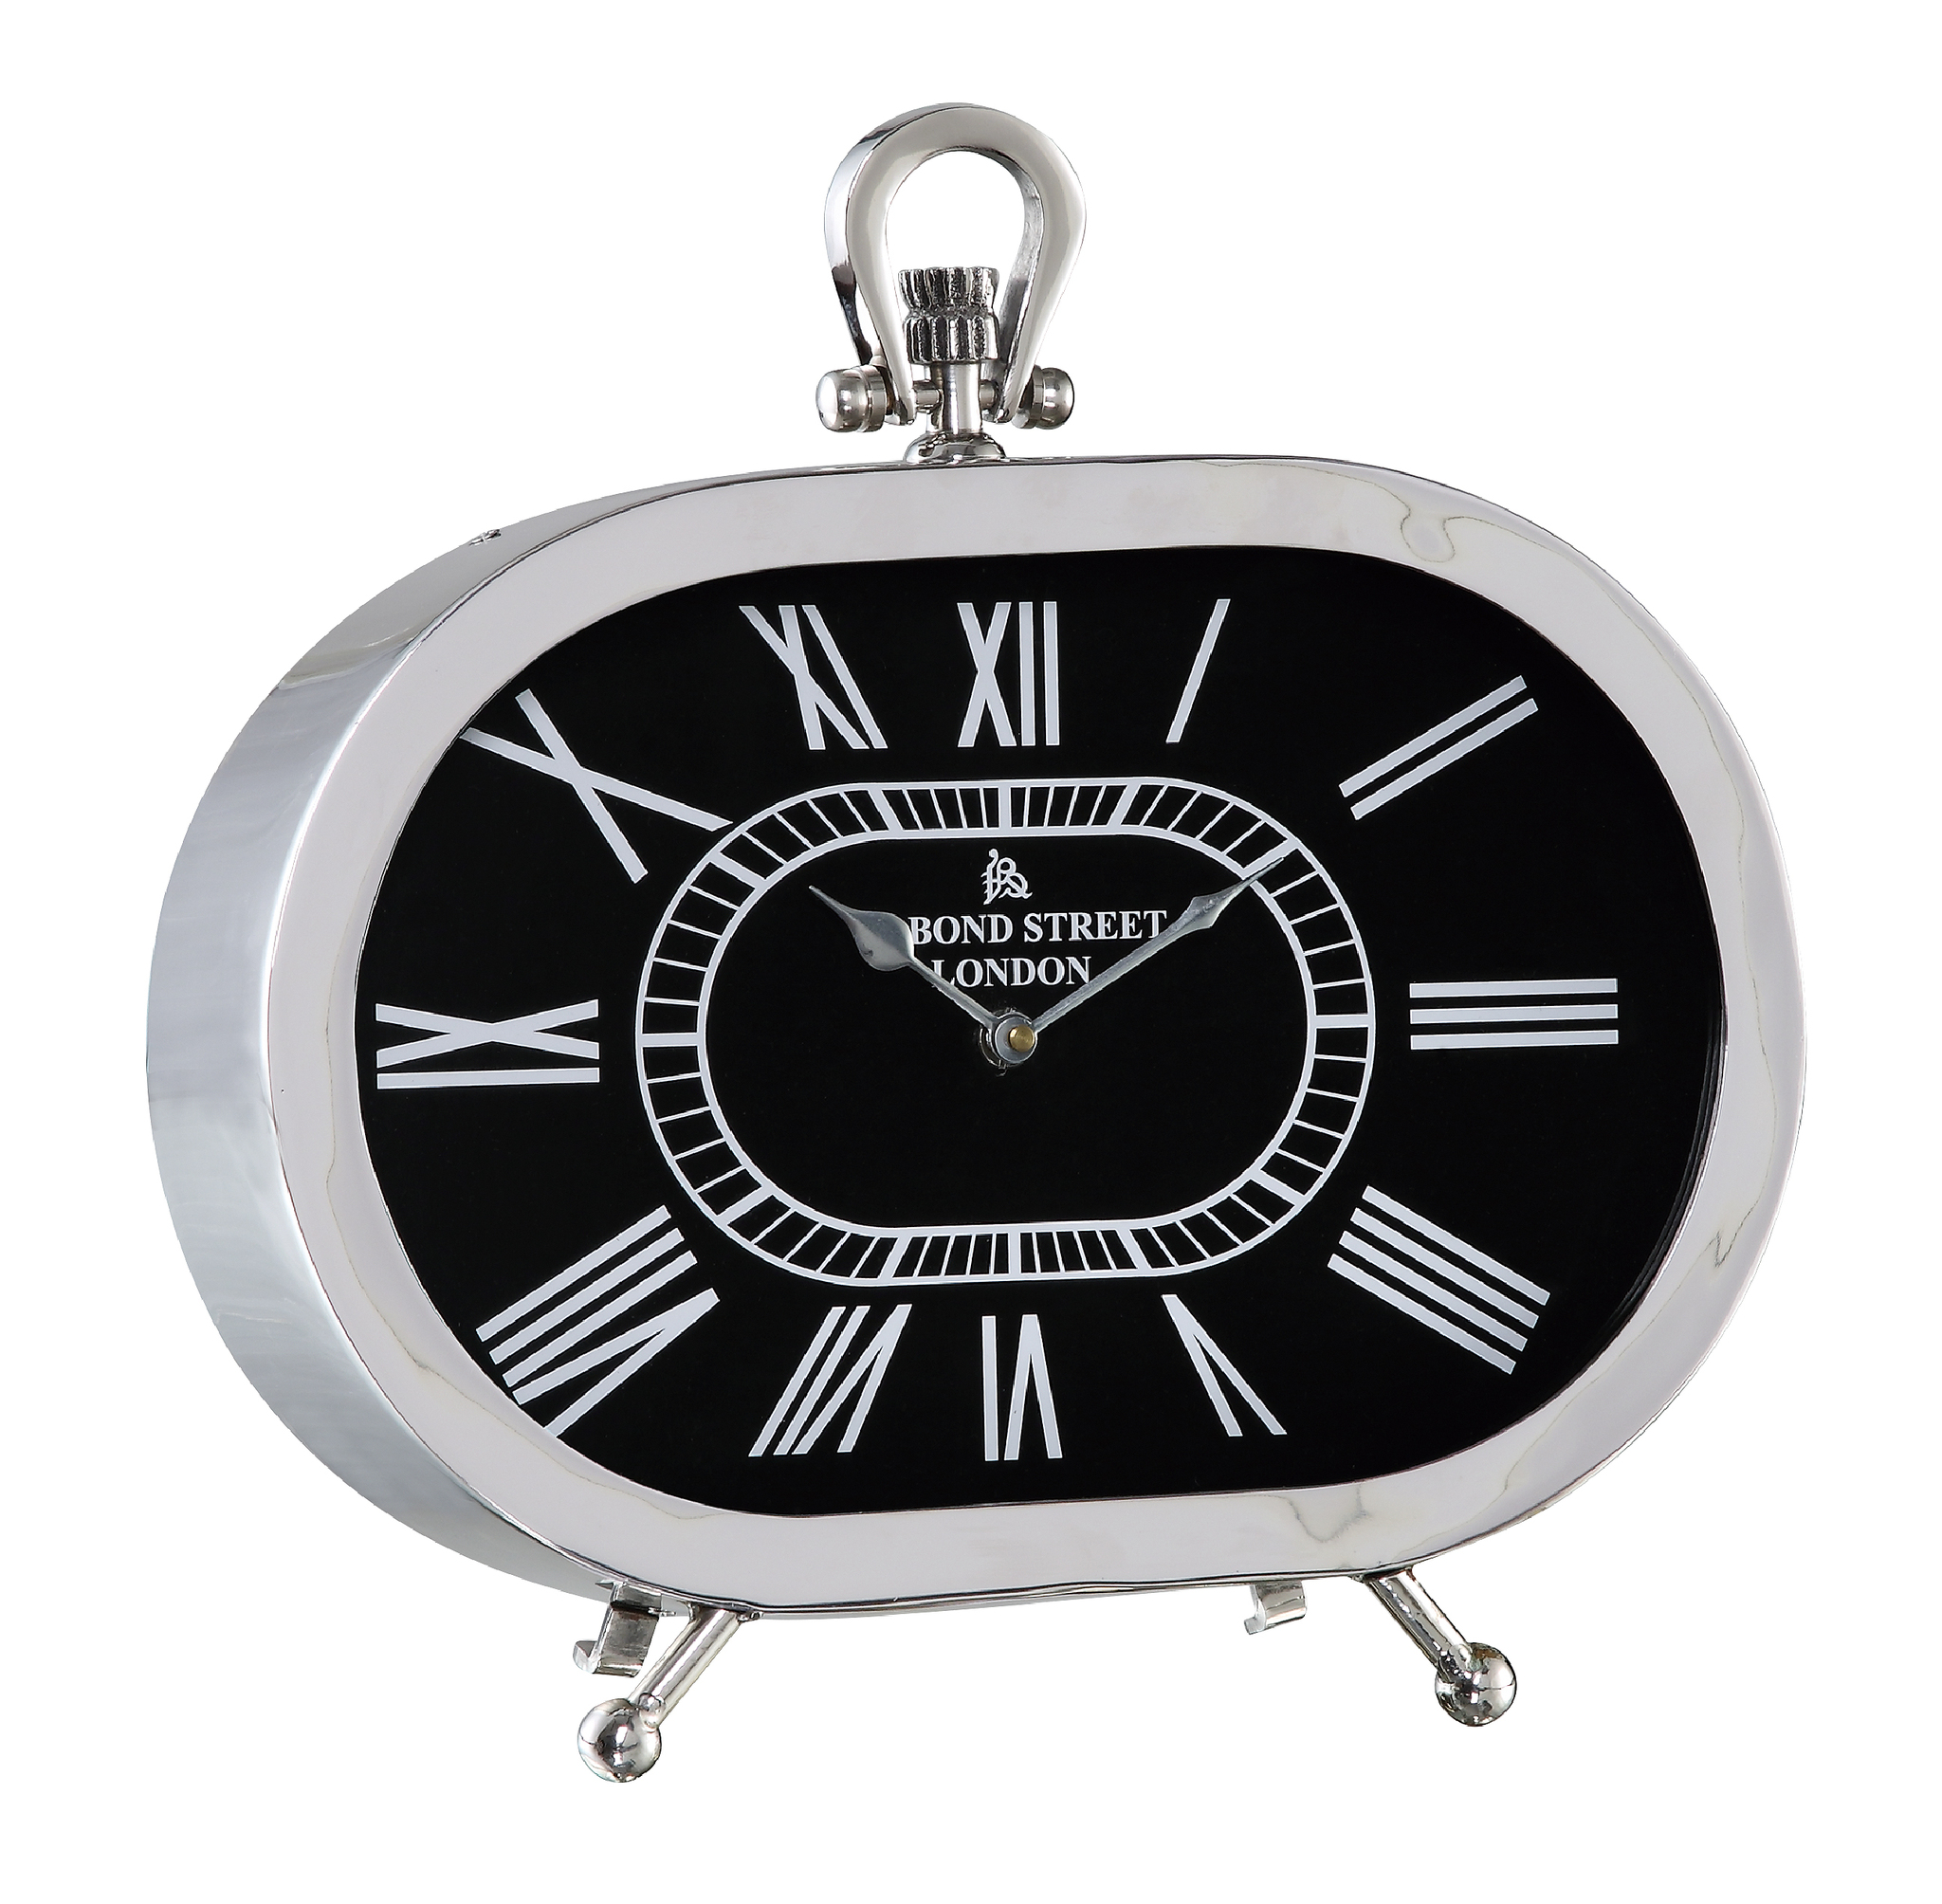 Oval Clock Face Crestview Collection Bond Street Oval Clock